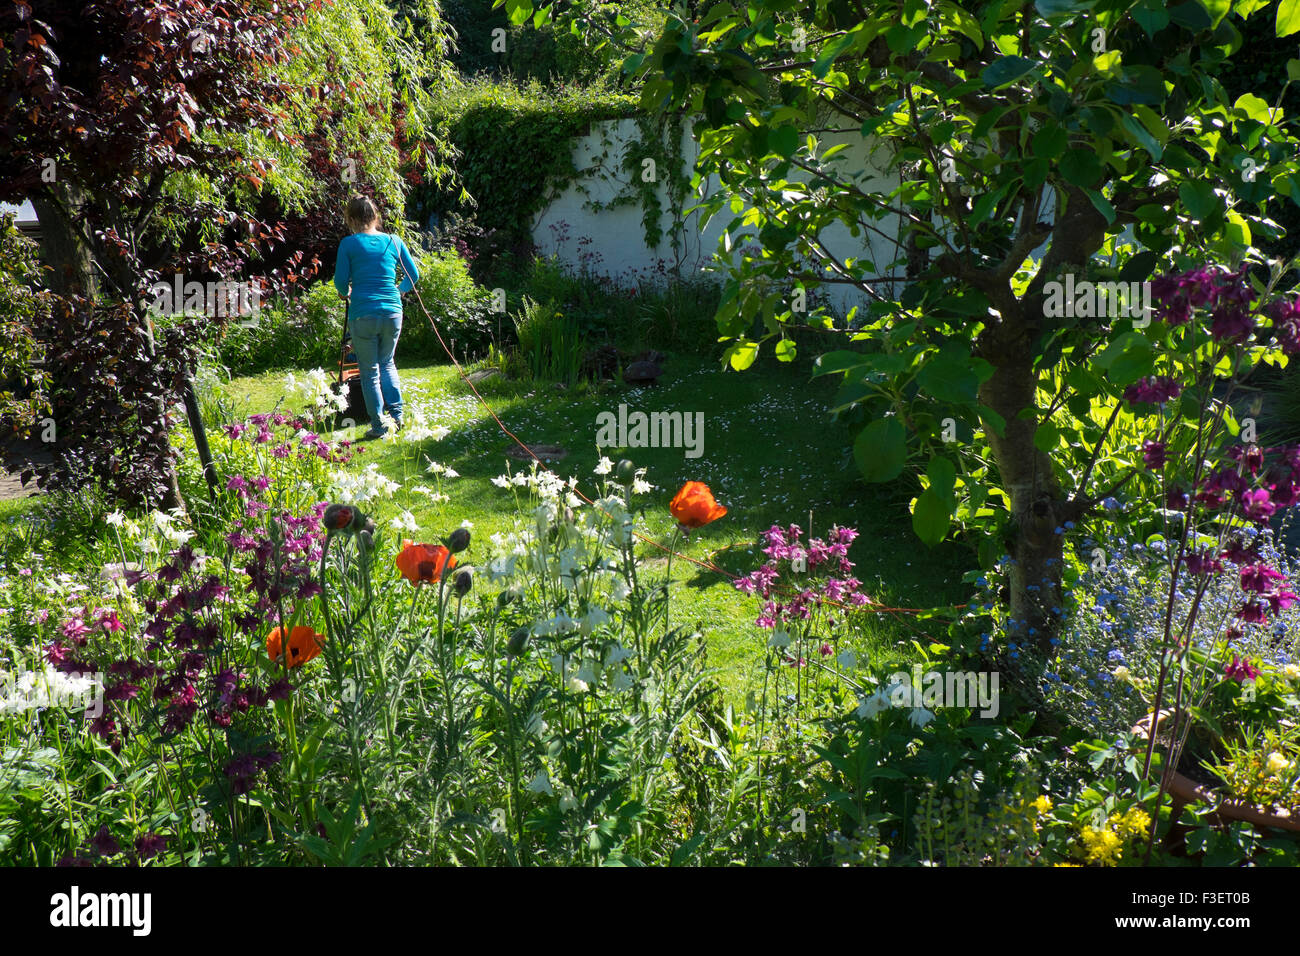 Elderly woman mowing lawn with electric mower, Wales, UK - Stock Image